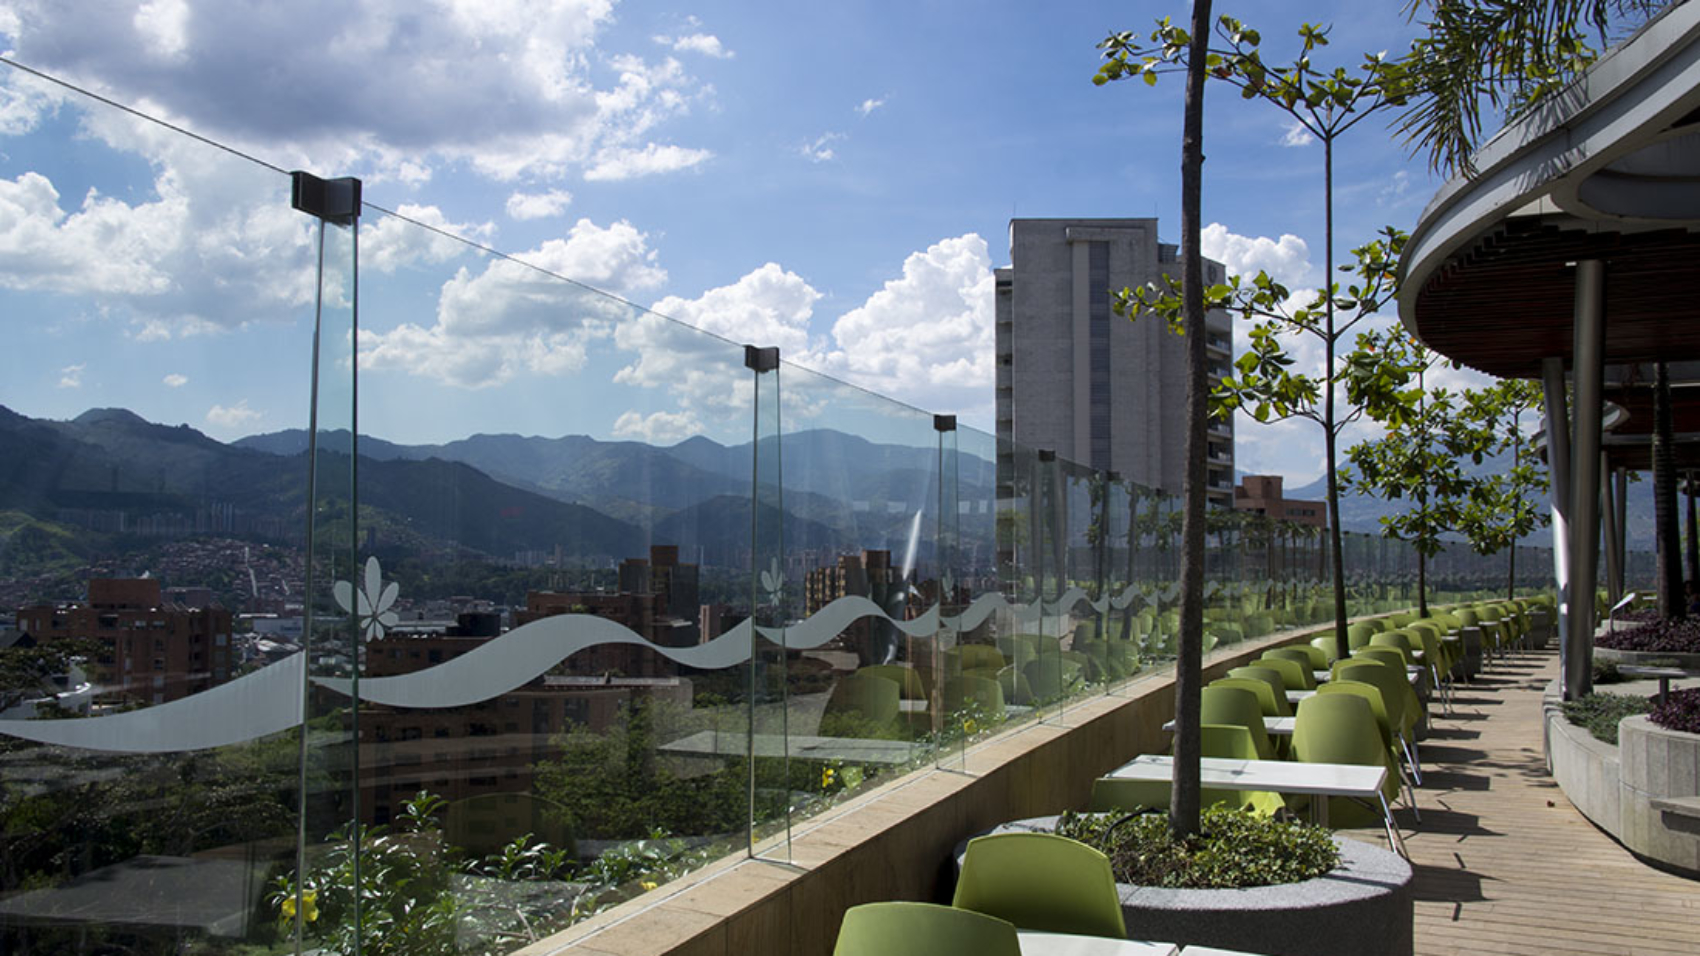 outdoor eating area Santa Fe Mall Medellin Colombia